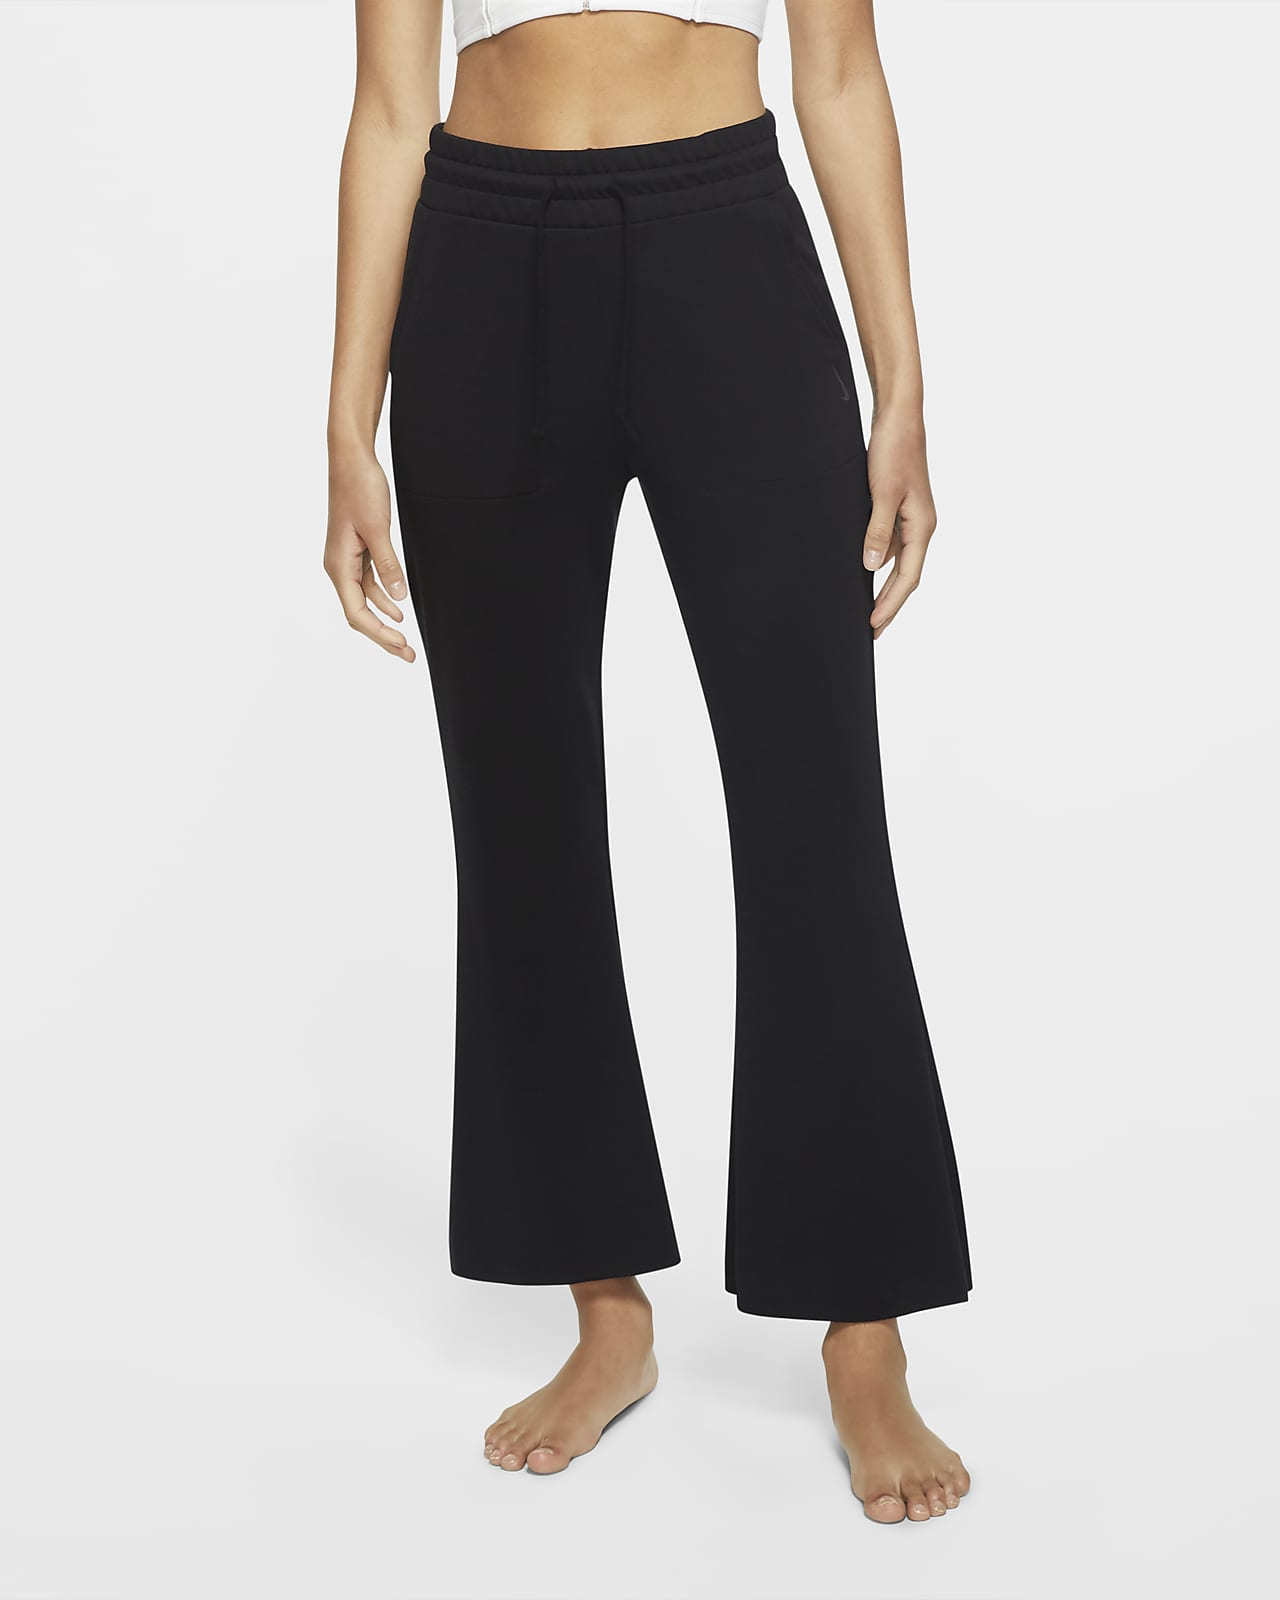 Nike Yoga Women's 7/8 Trousers